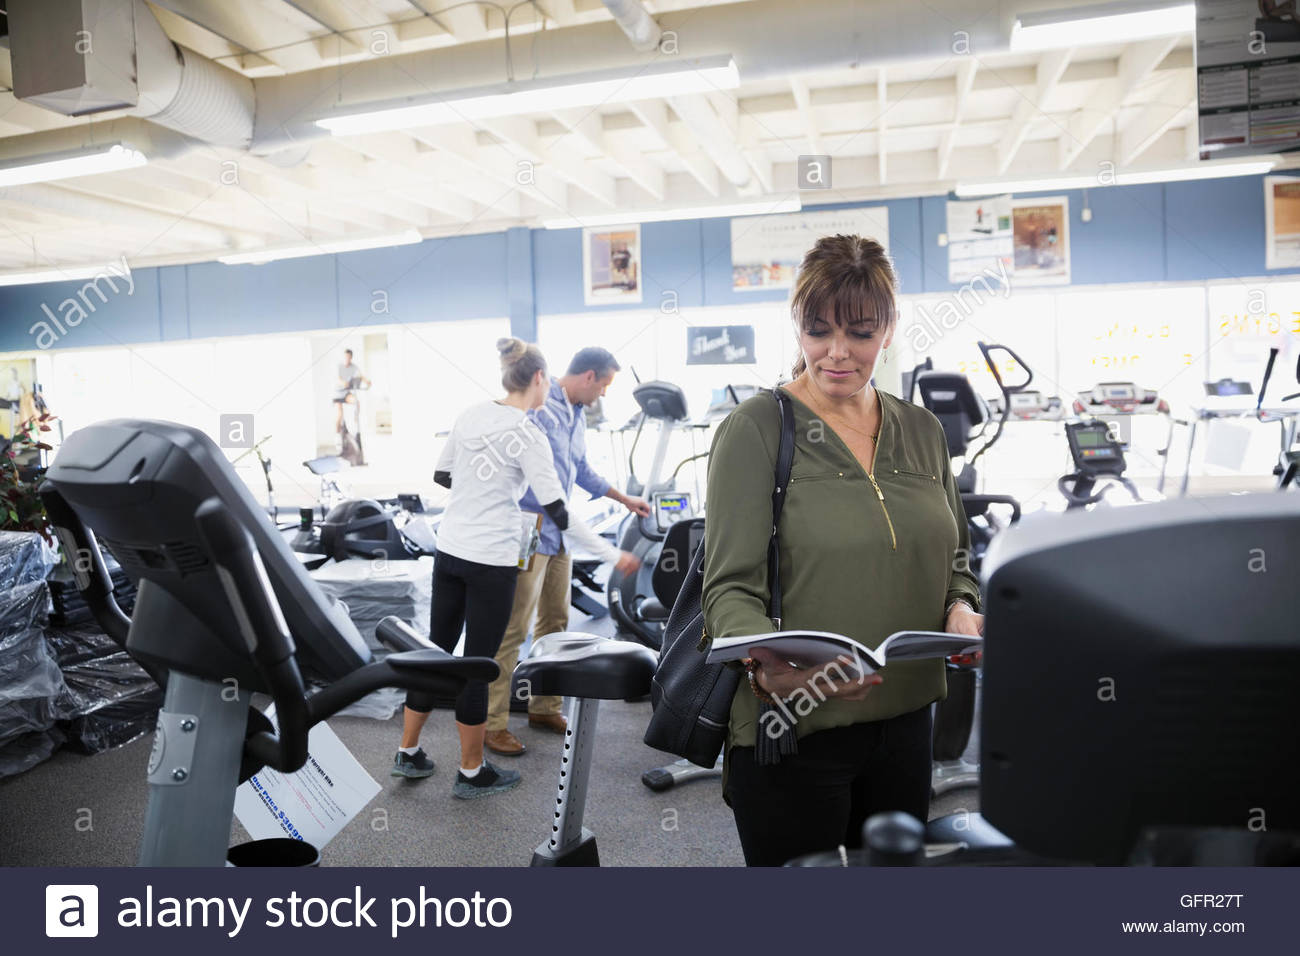 Woman reading information booklet on cardio machine at home gym